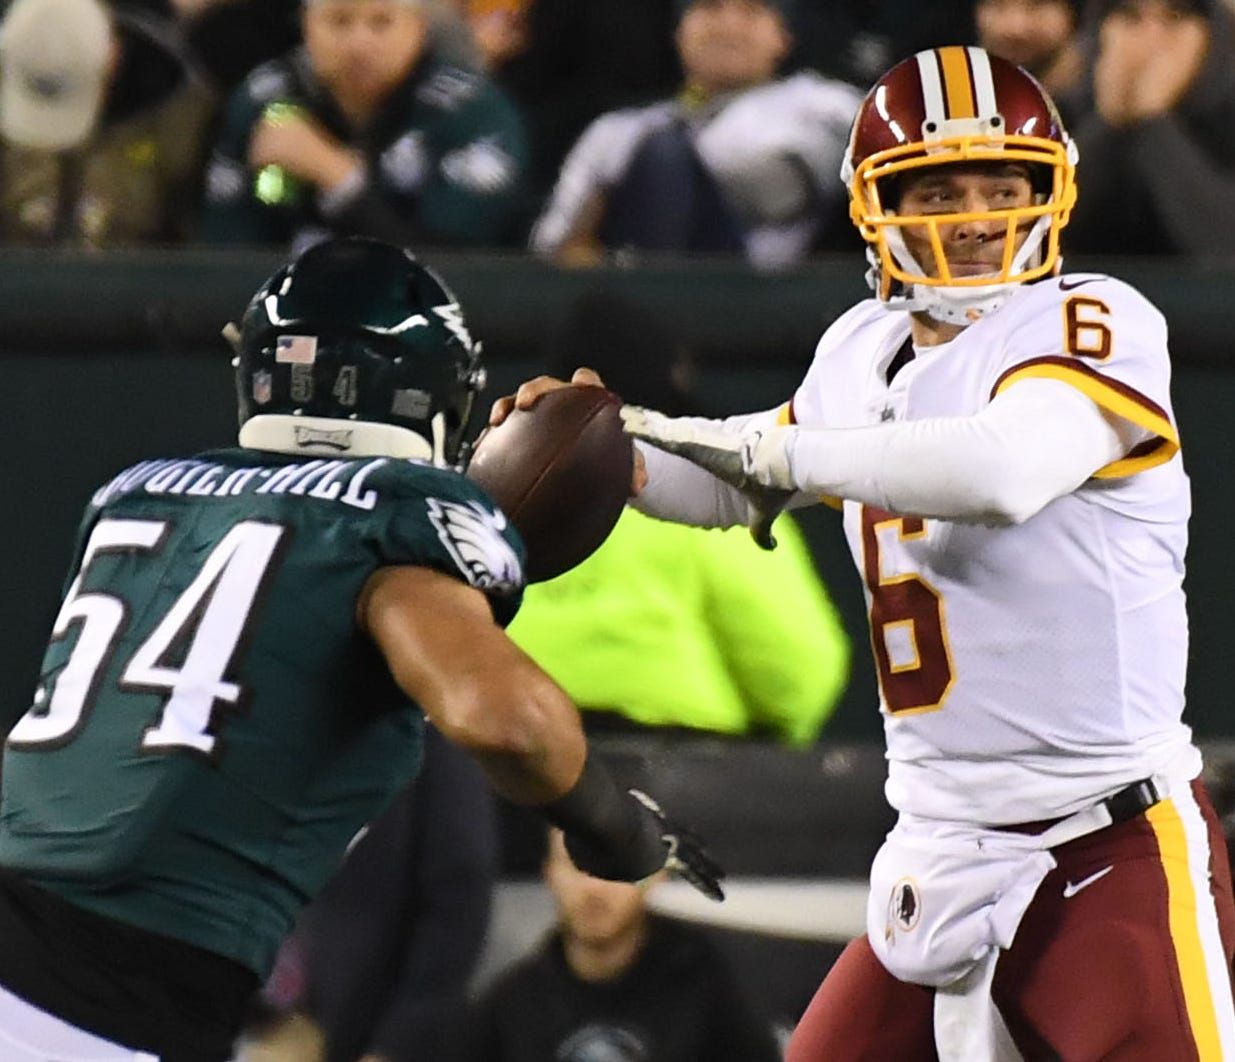 Nfl Washington Redskins At Philadelphia Eagles